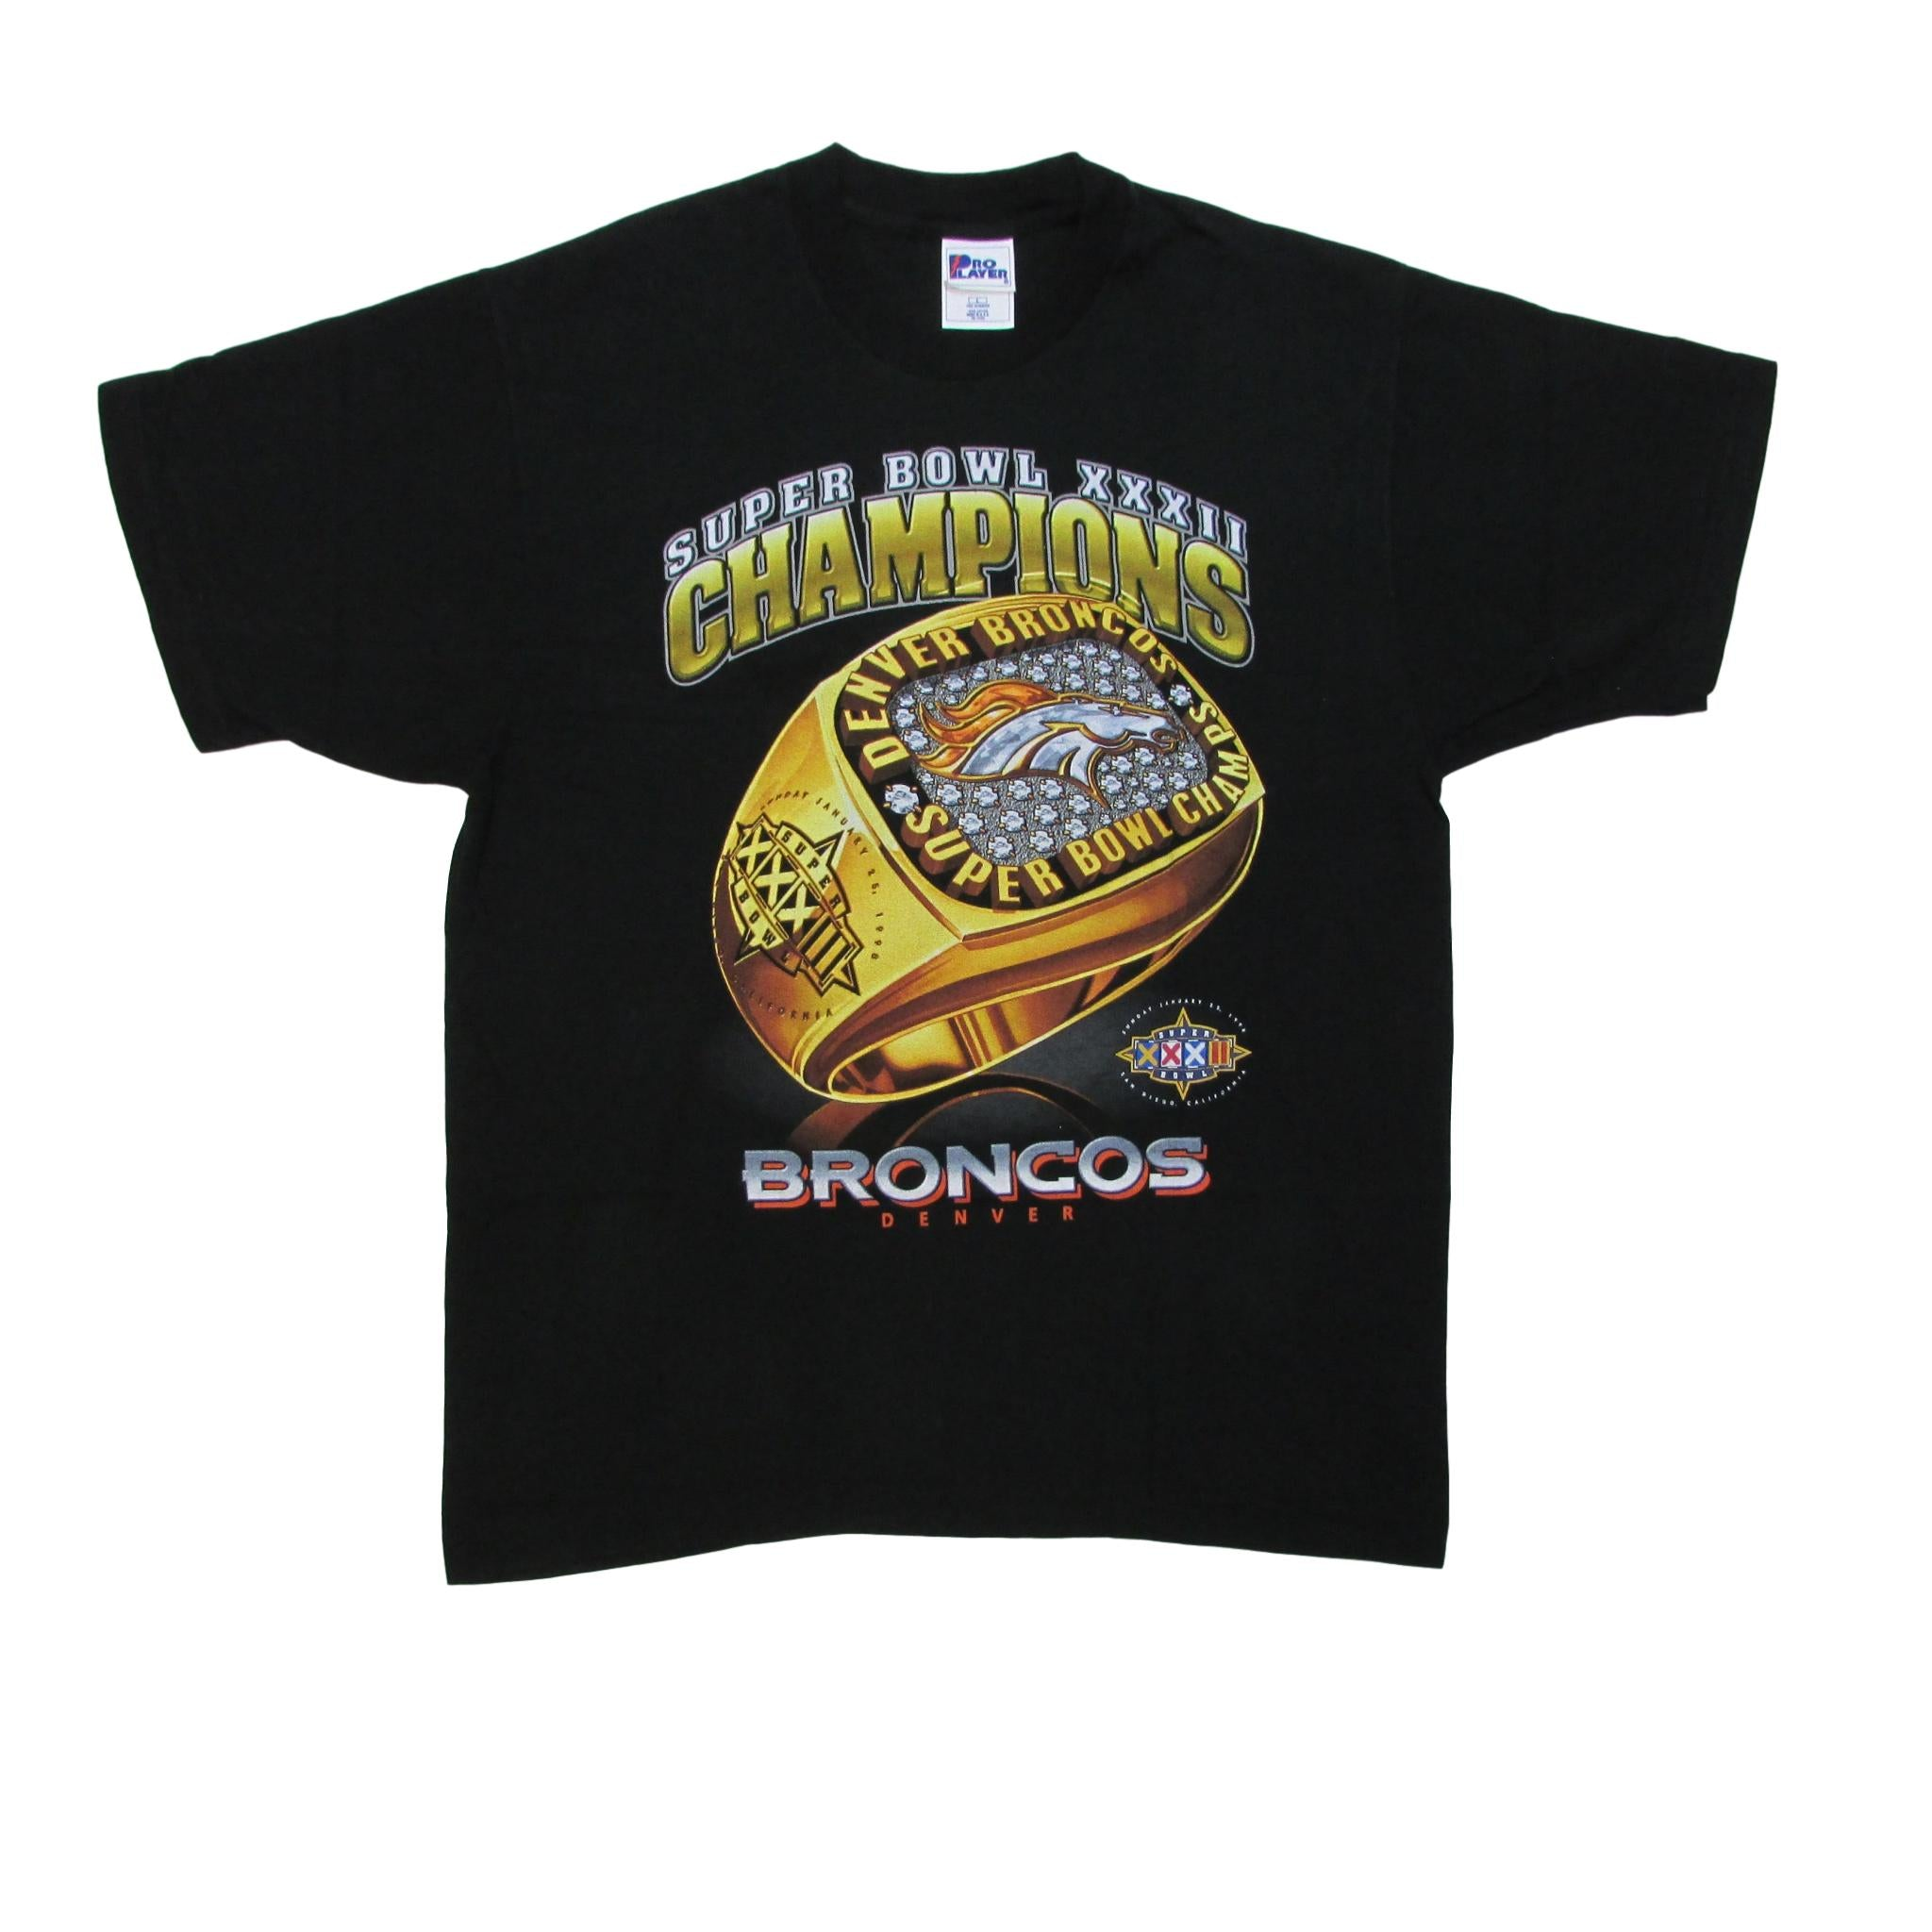 Denver Broncos Super Bowl XXXII Champions T-Shirt Pro Player L